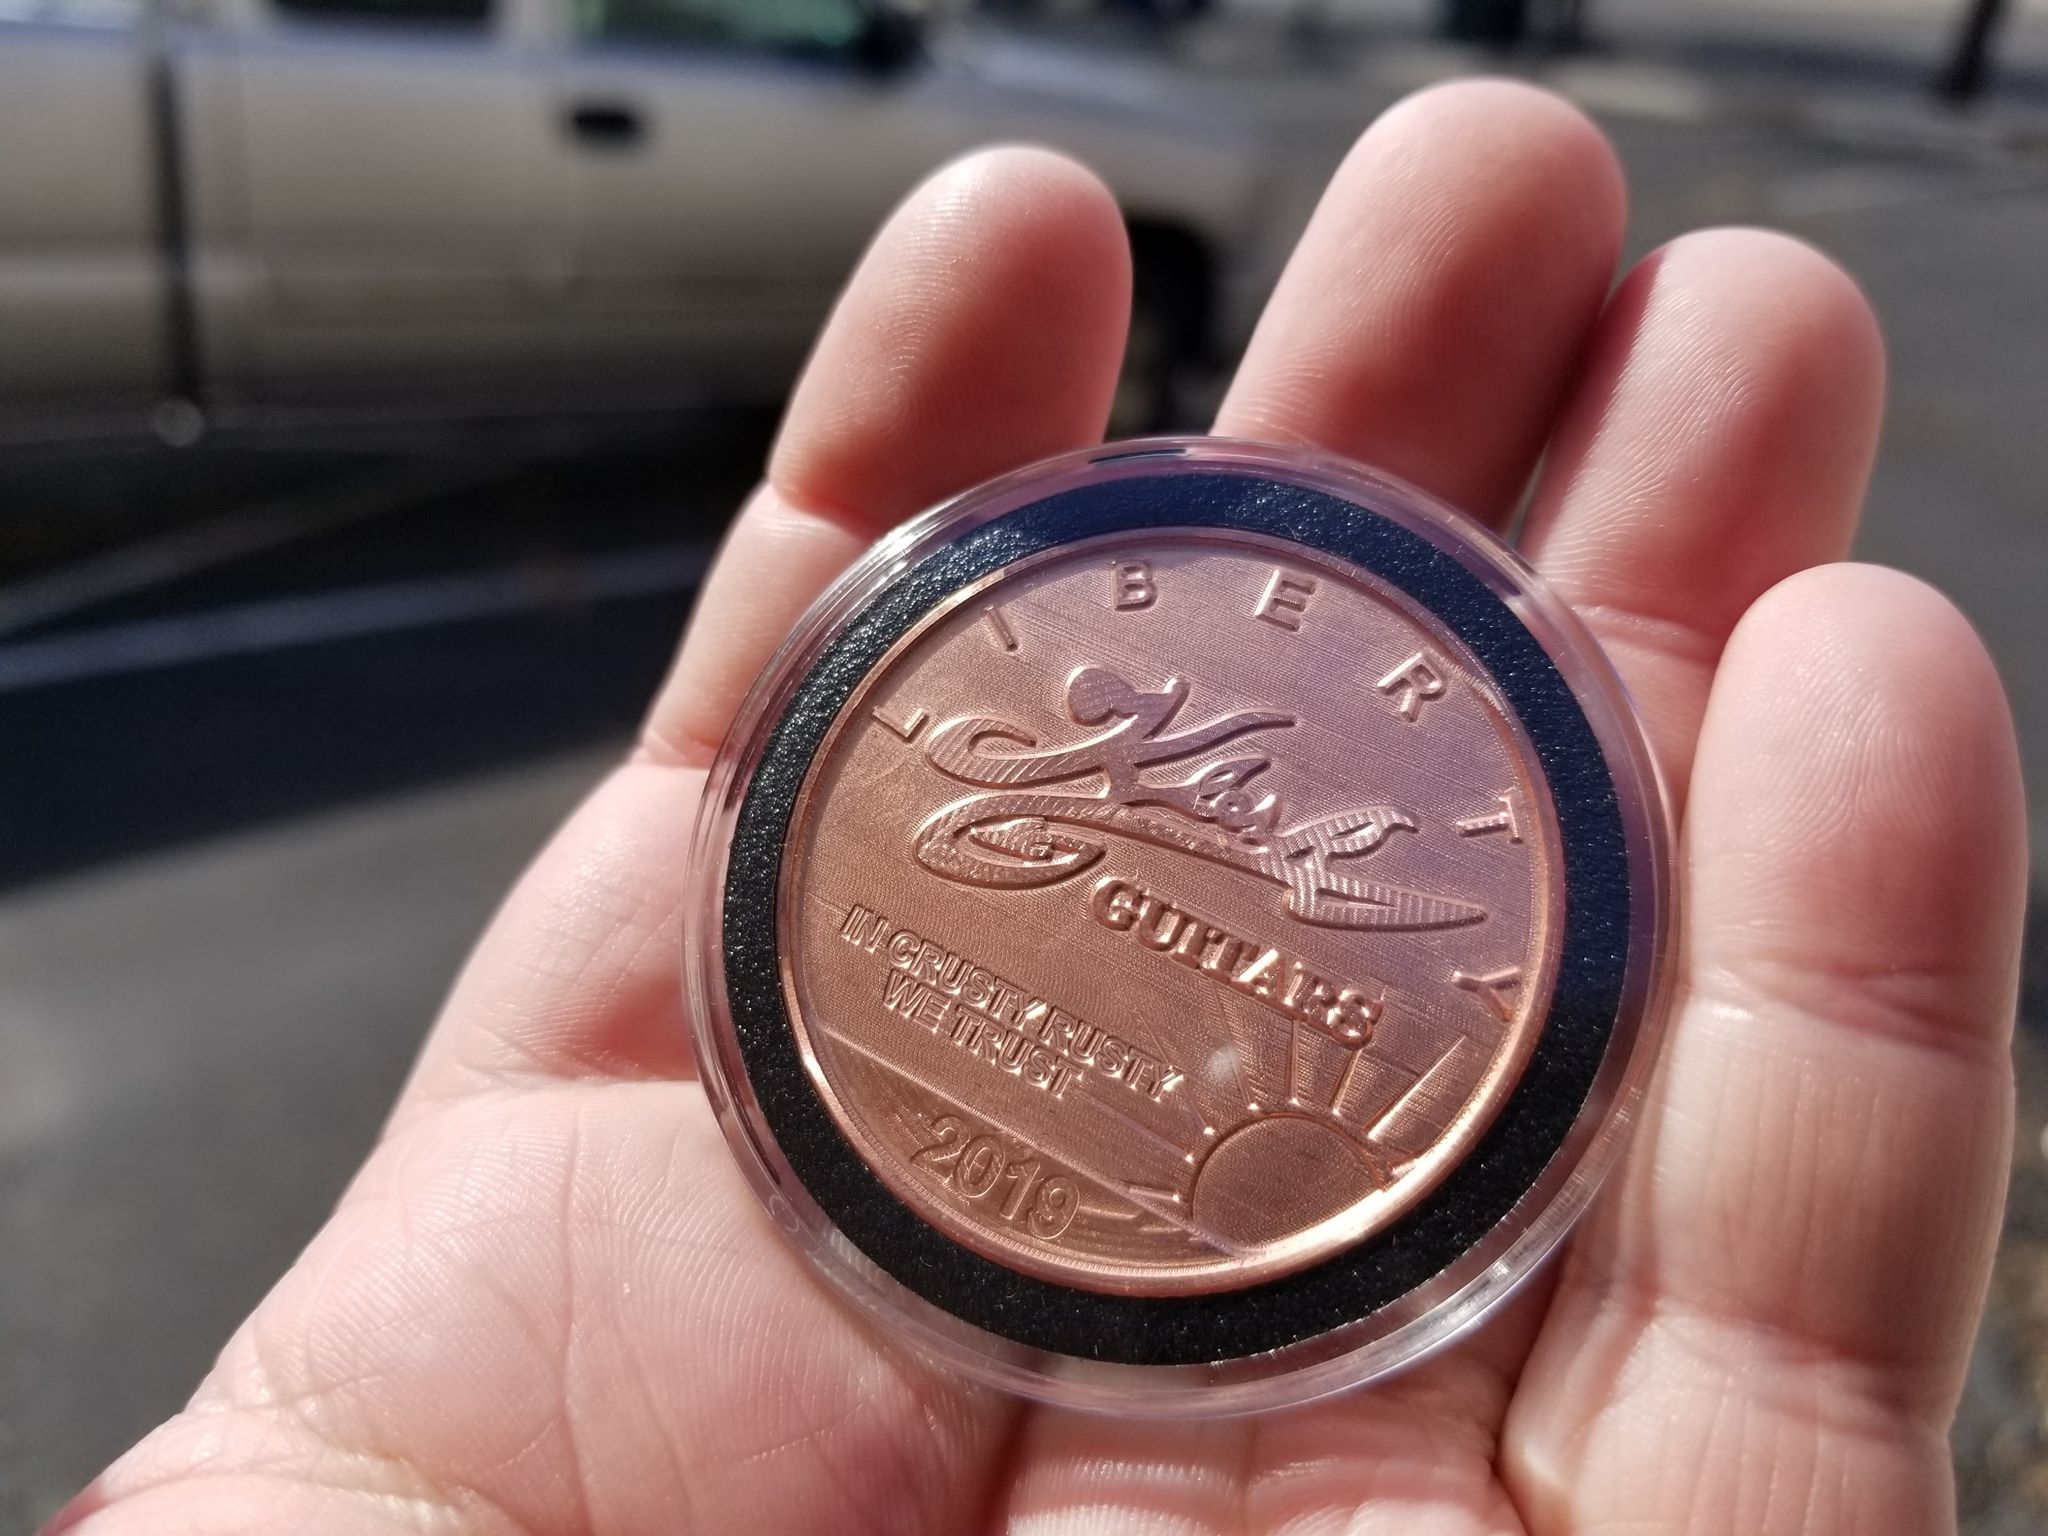 Klesh Guitars 1oz Copper Round